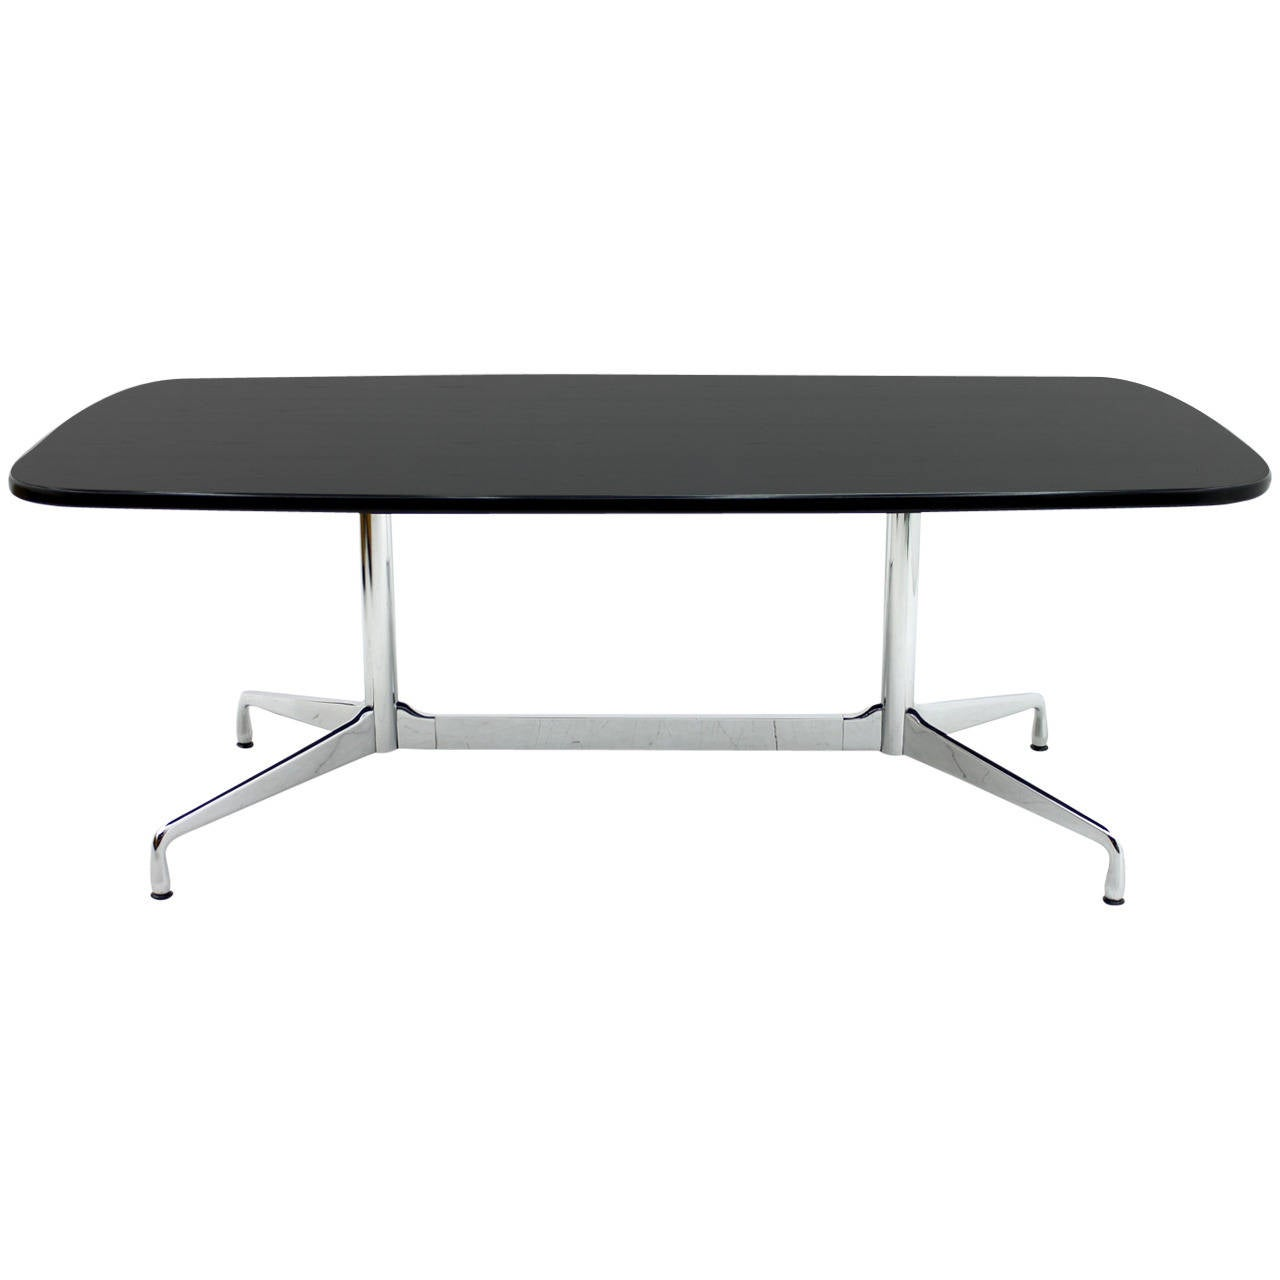 Eames Dining or Conference Table Desk Vitra at 1stdibs : 1616192l from www.1stdibs.com size 1280 x 1280 jpeg 32kB